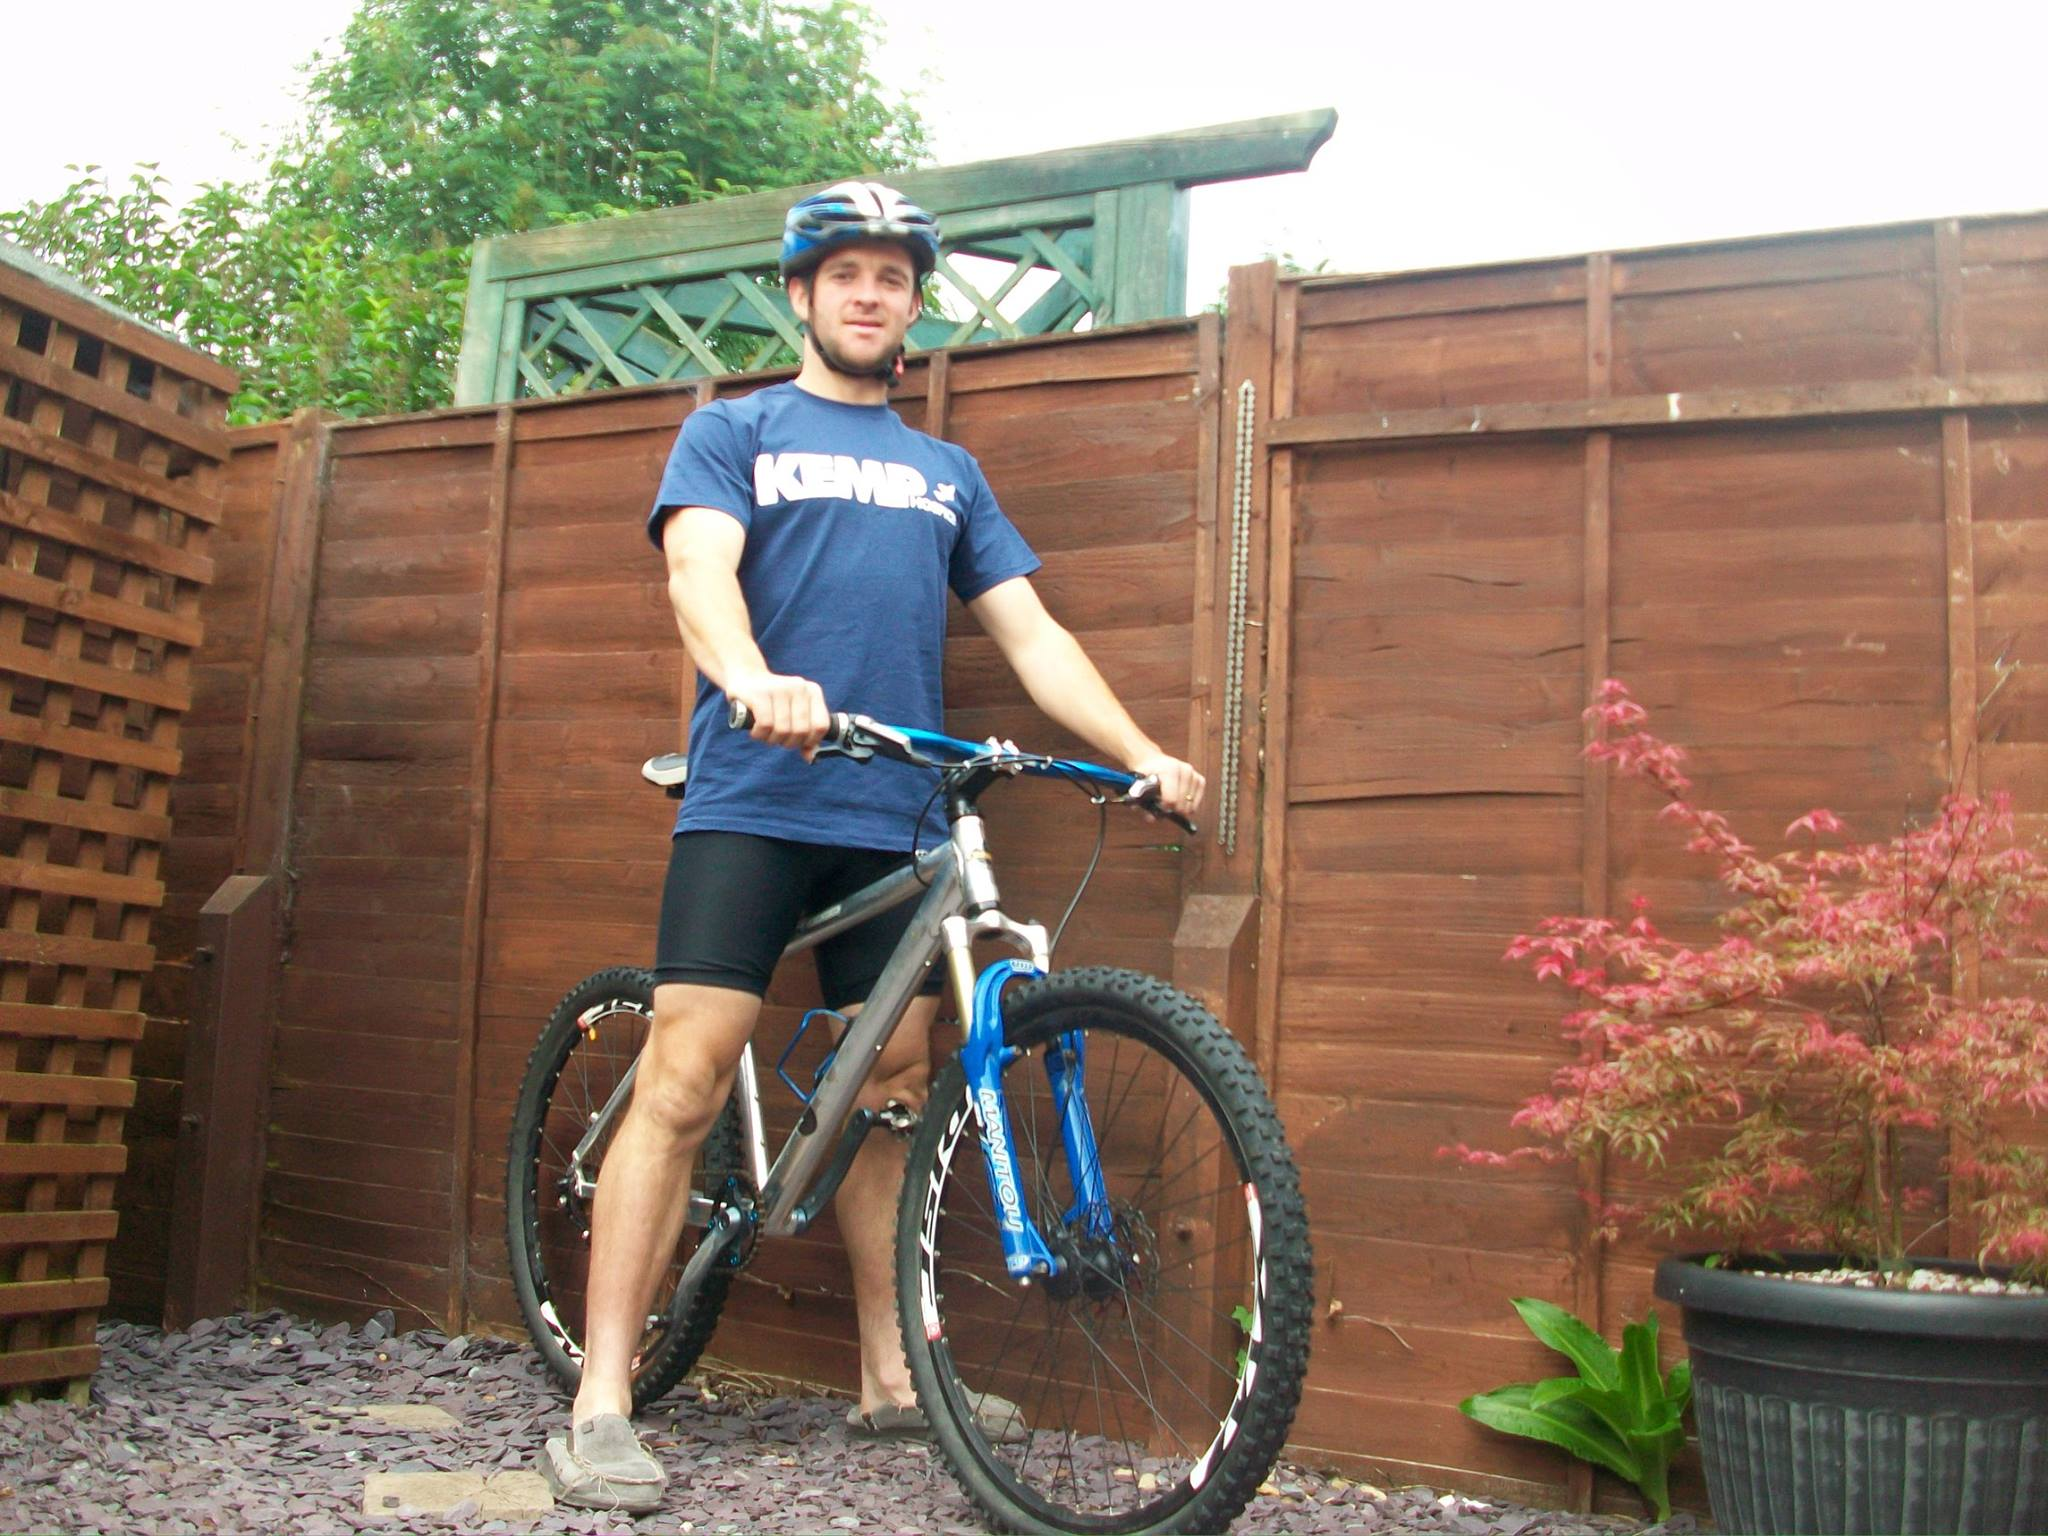 FUNDRAISING CHALLENGE: Pablo Requejo will cycle for 24 hours.